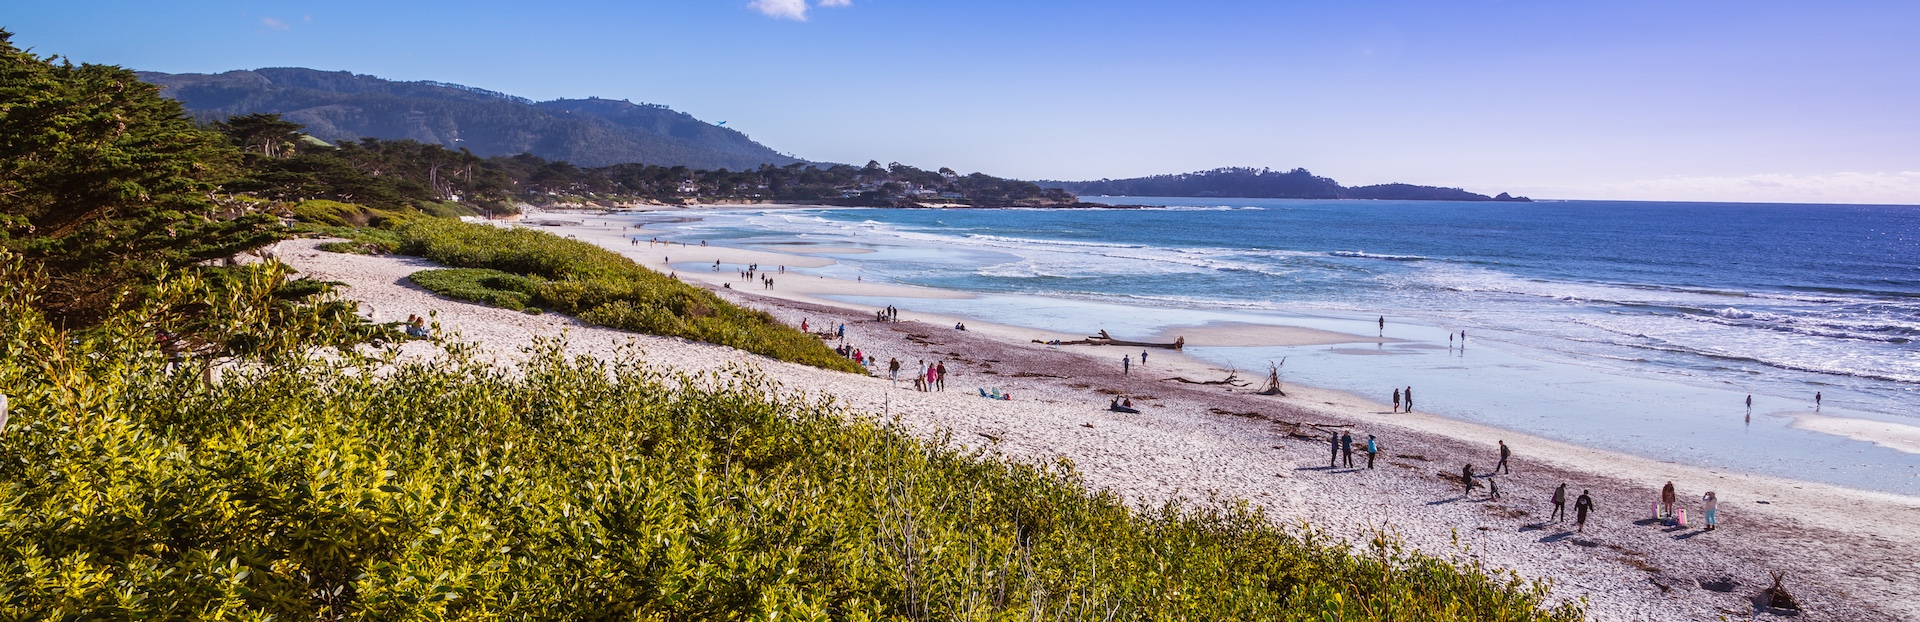 Carmel beach crop